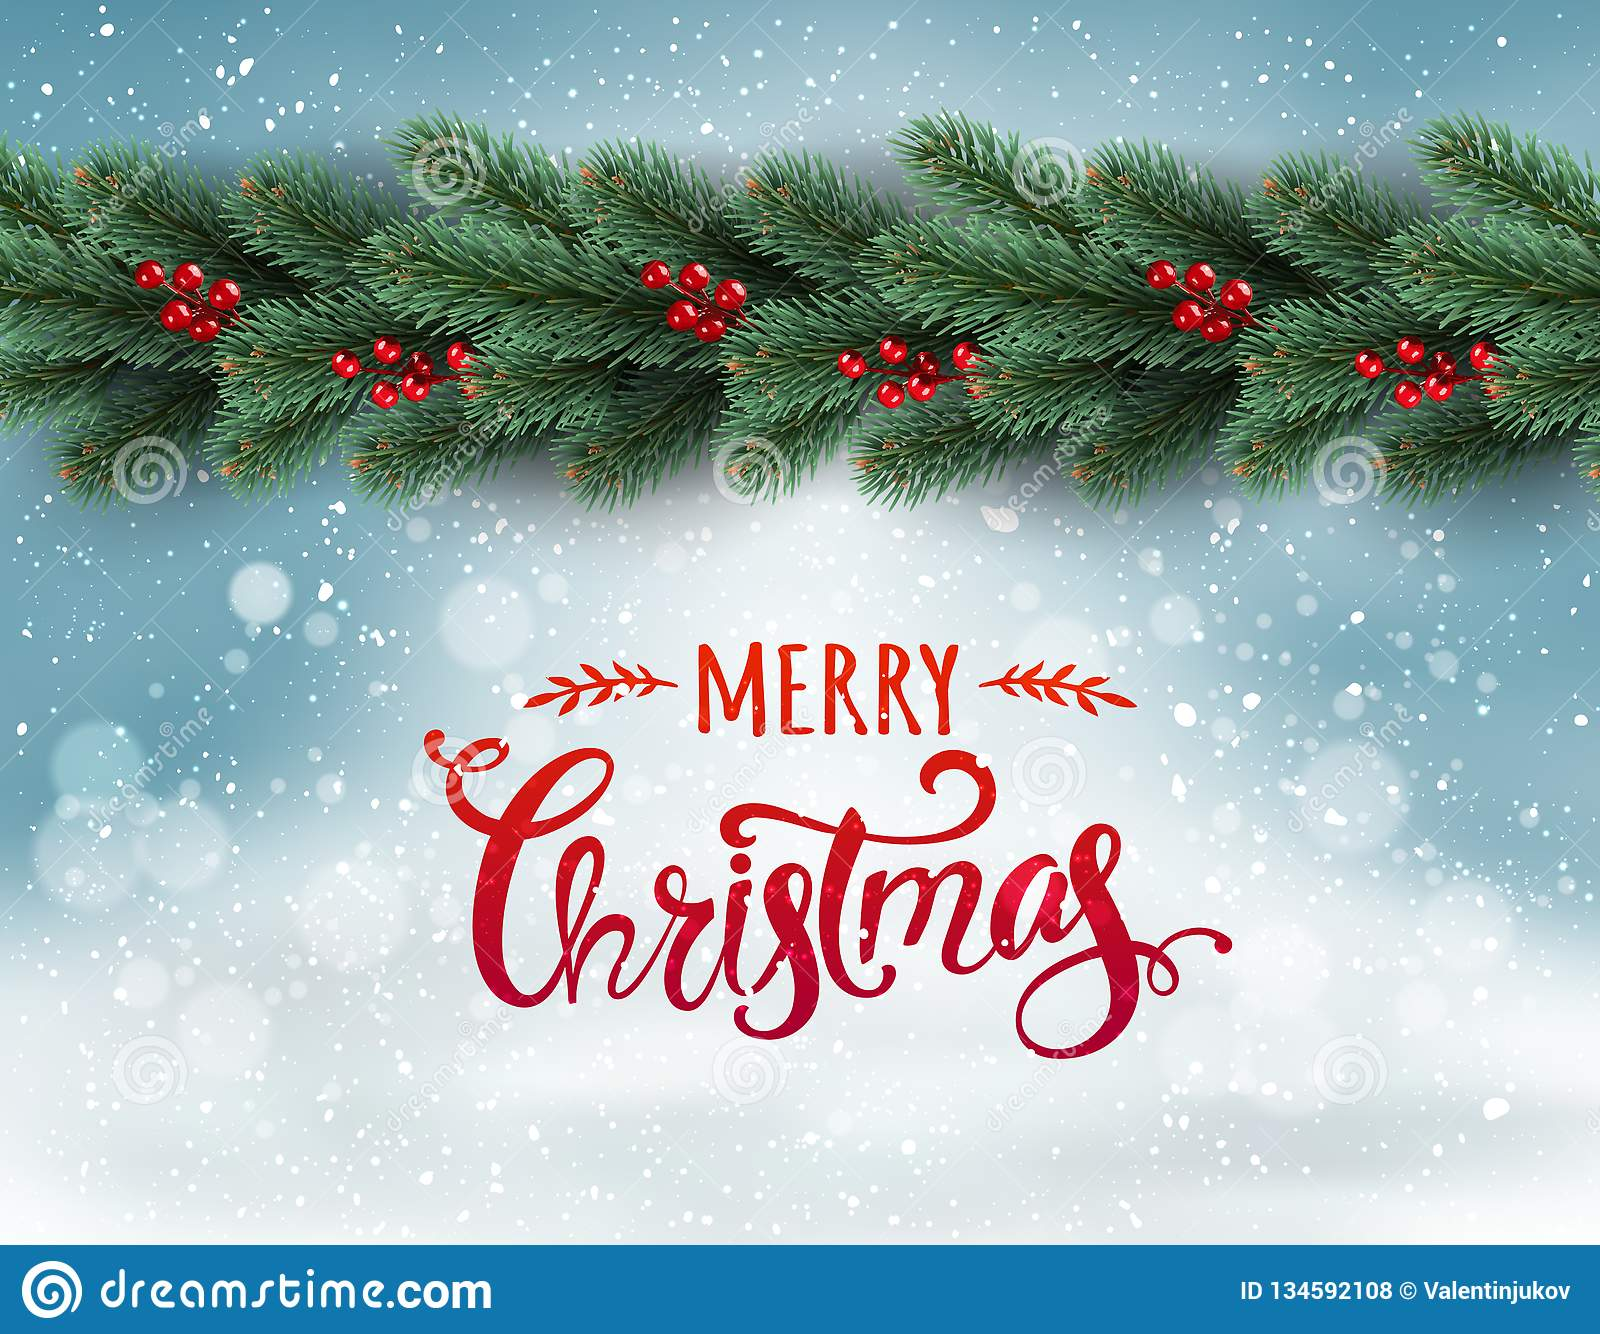 Merry Christmas Typographical on snowy background with garland of tree branches decorated with berries, bokeh, snowflakes.